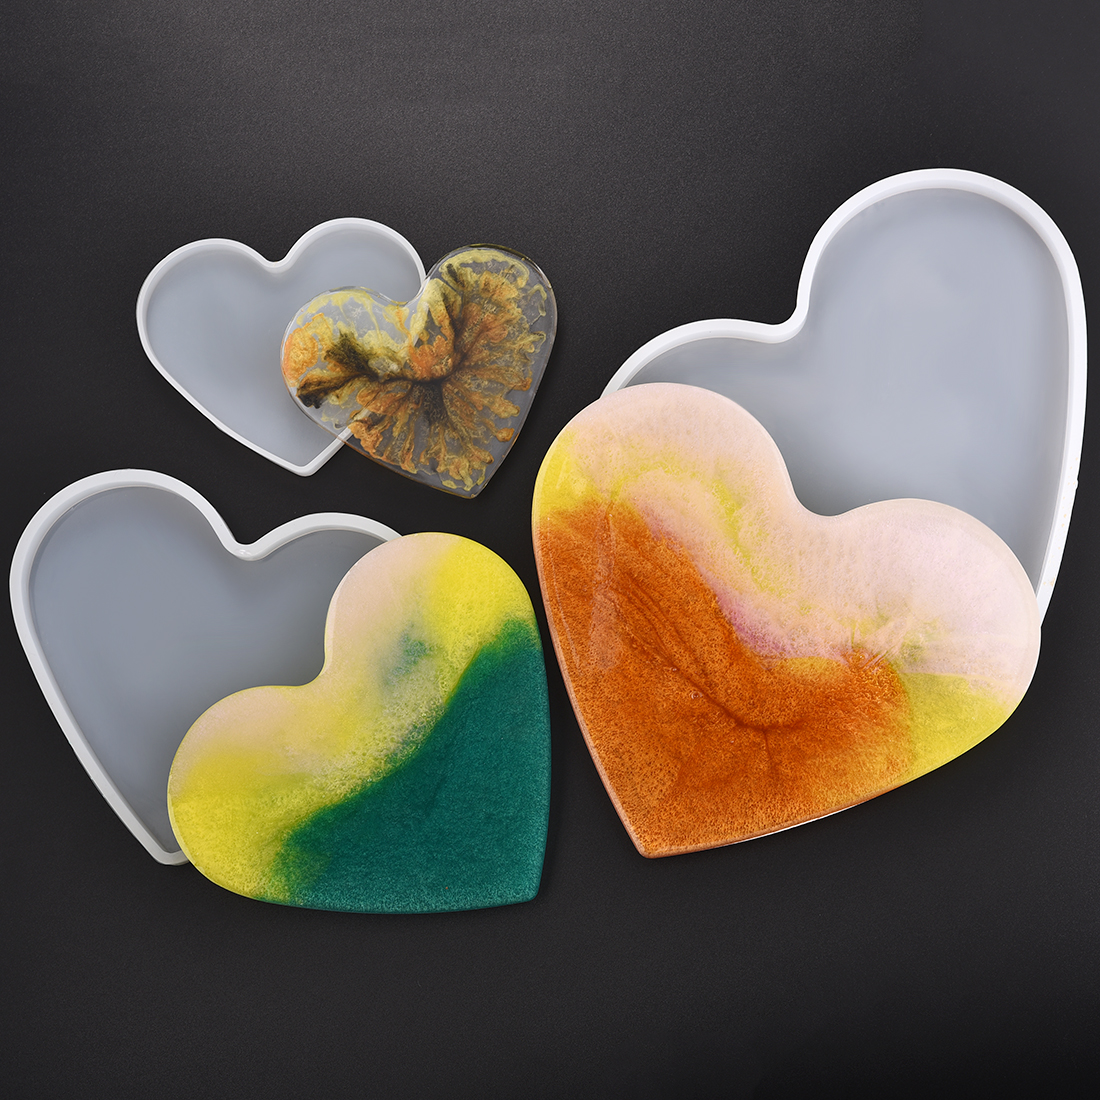 Heart Shape Silicone Mold For Making Coaster DIY Jewelry Making Tools For Resin UV Epoxy Decoration Pressed Flower Crafts